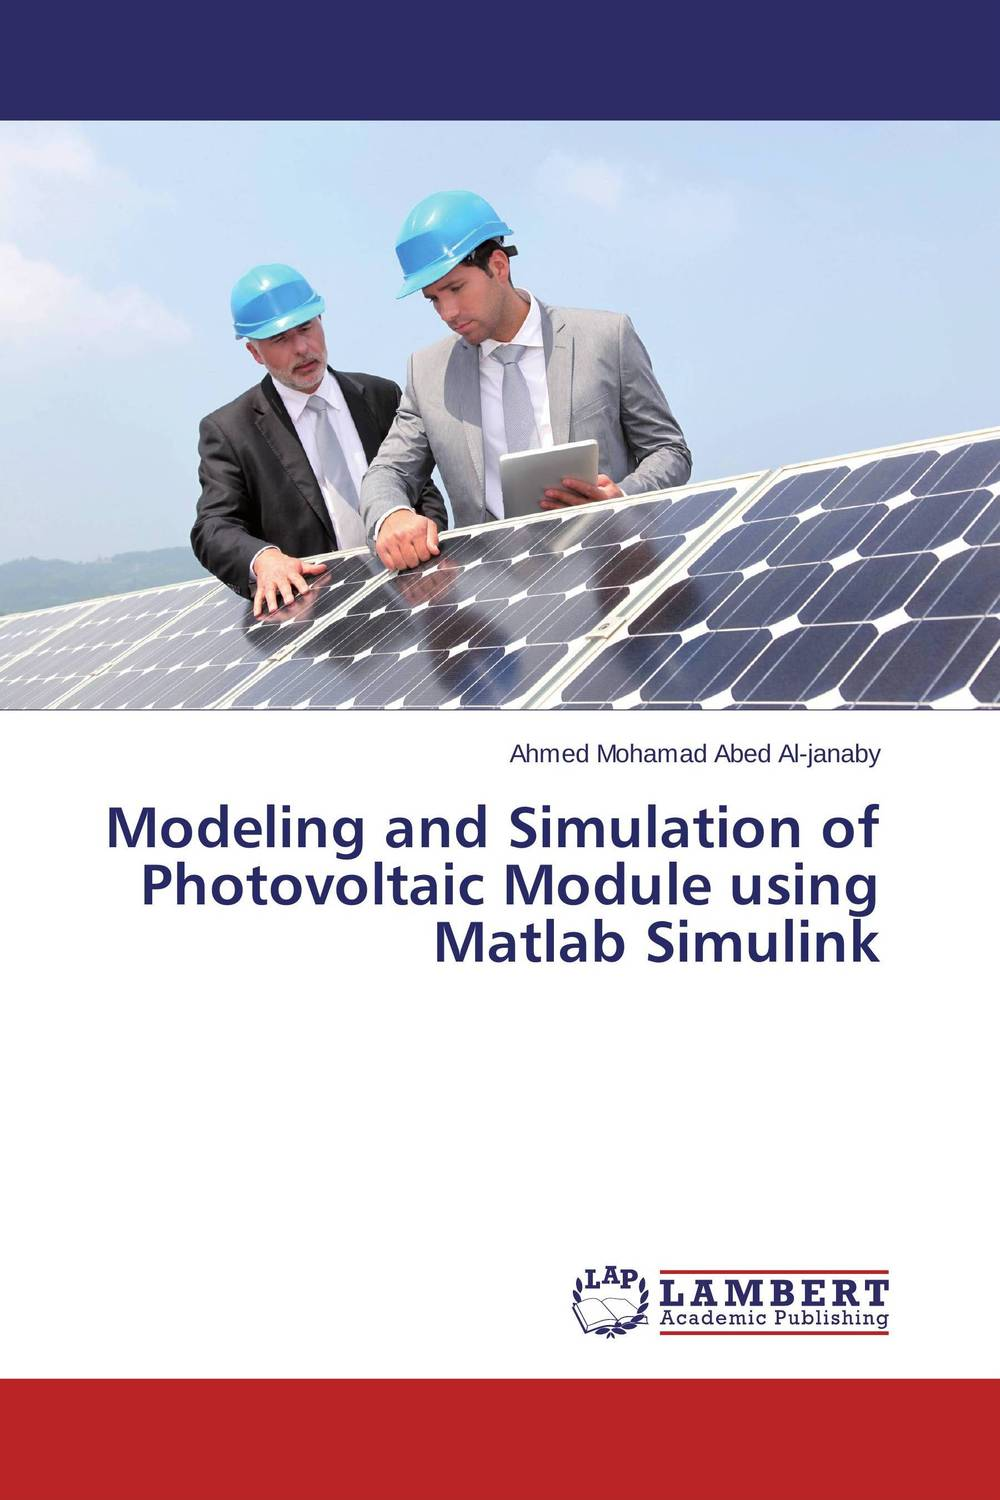 Modeling and Simulation of Photovoltaic Module using Matlab Simulink дьяконов в matlab и simulink для радиоинженеров